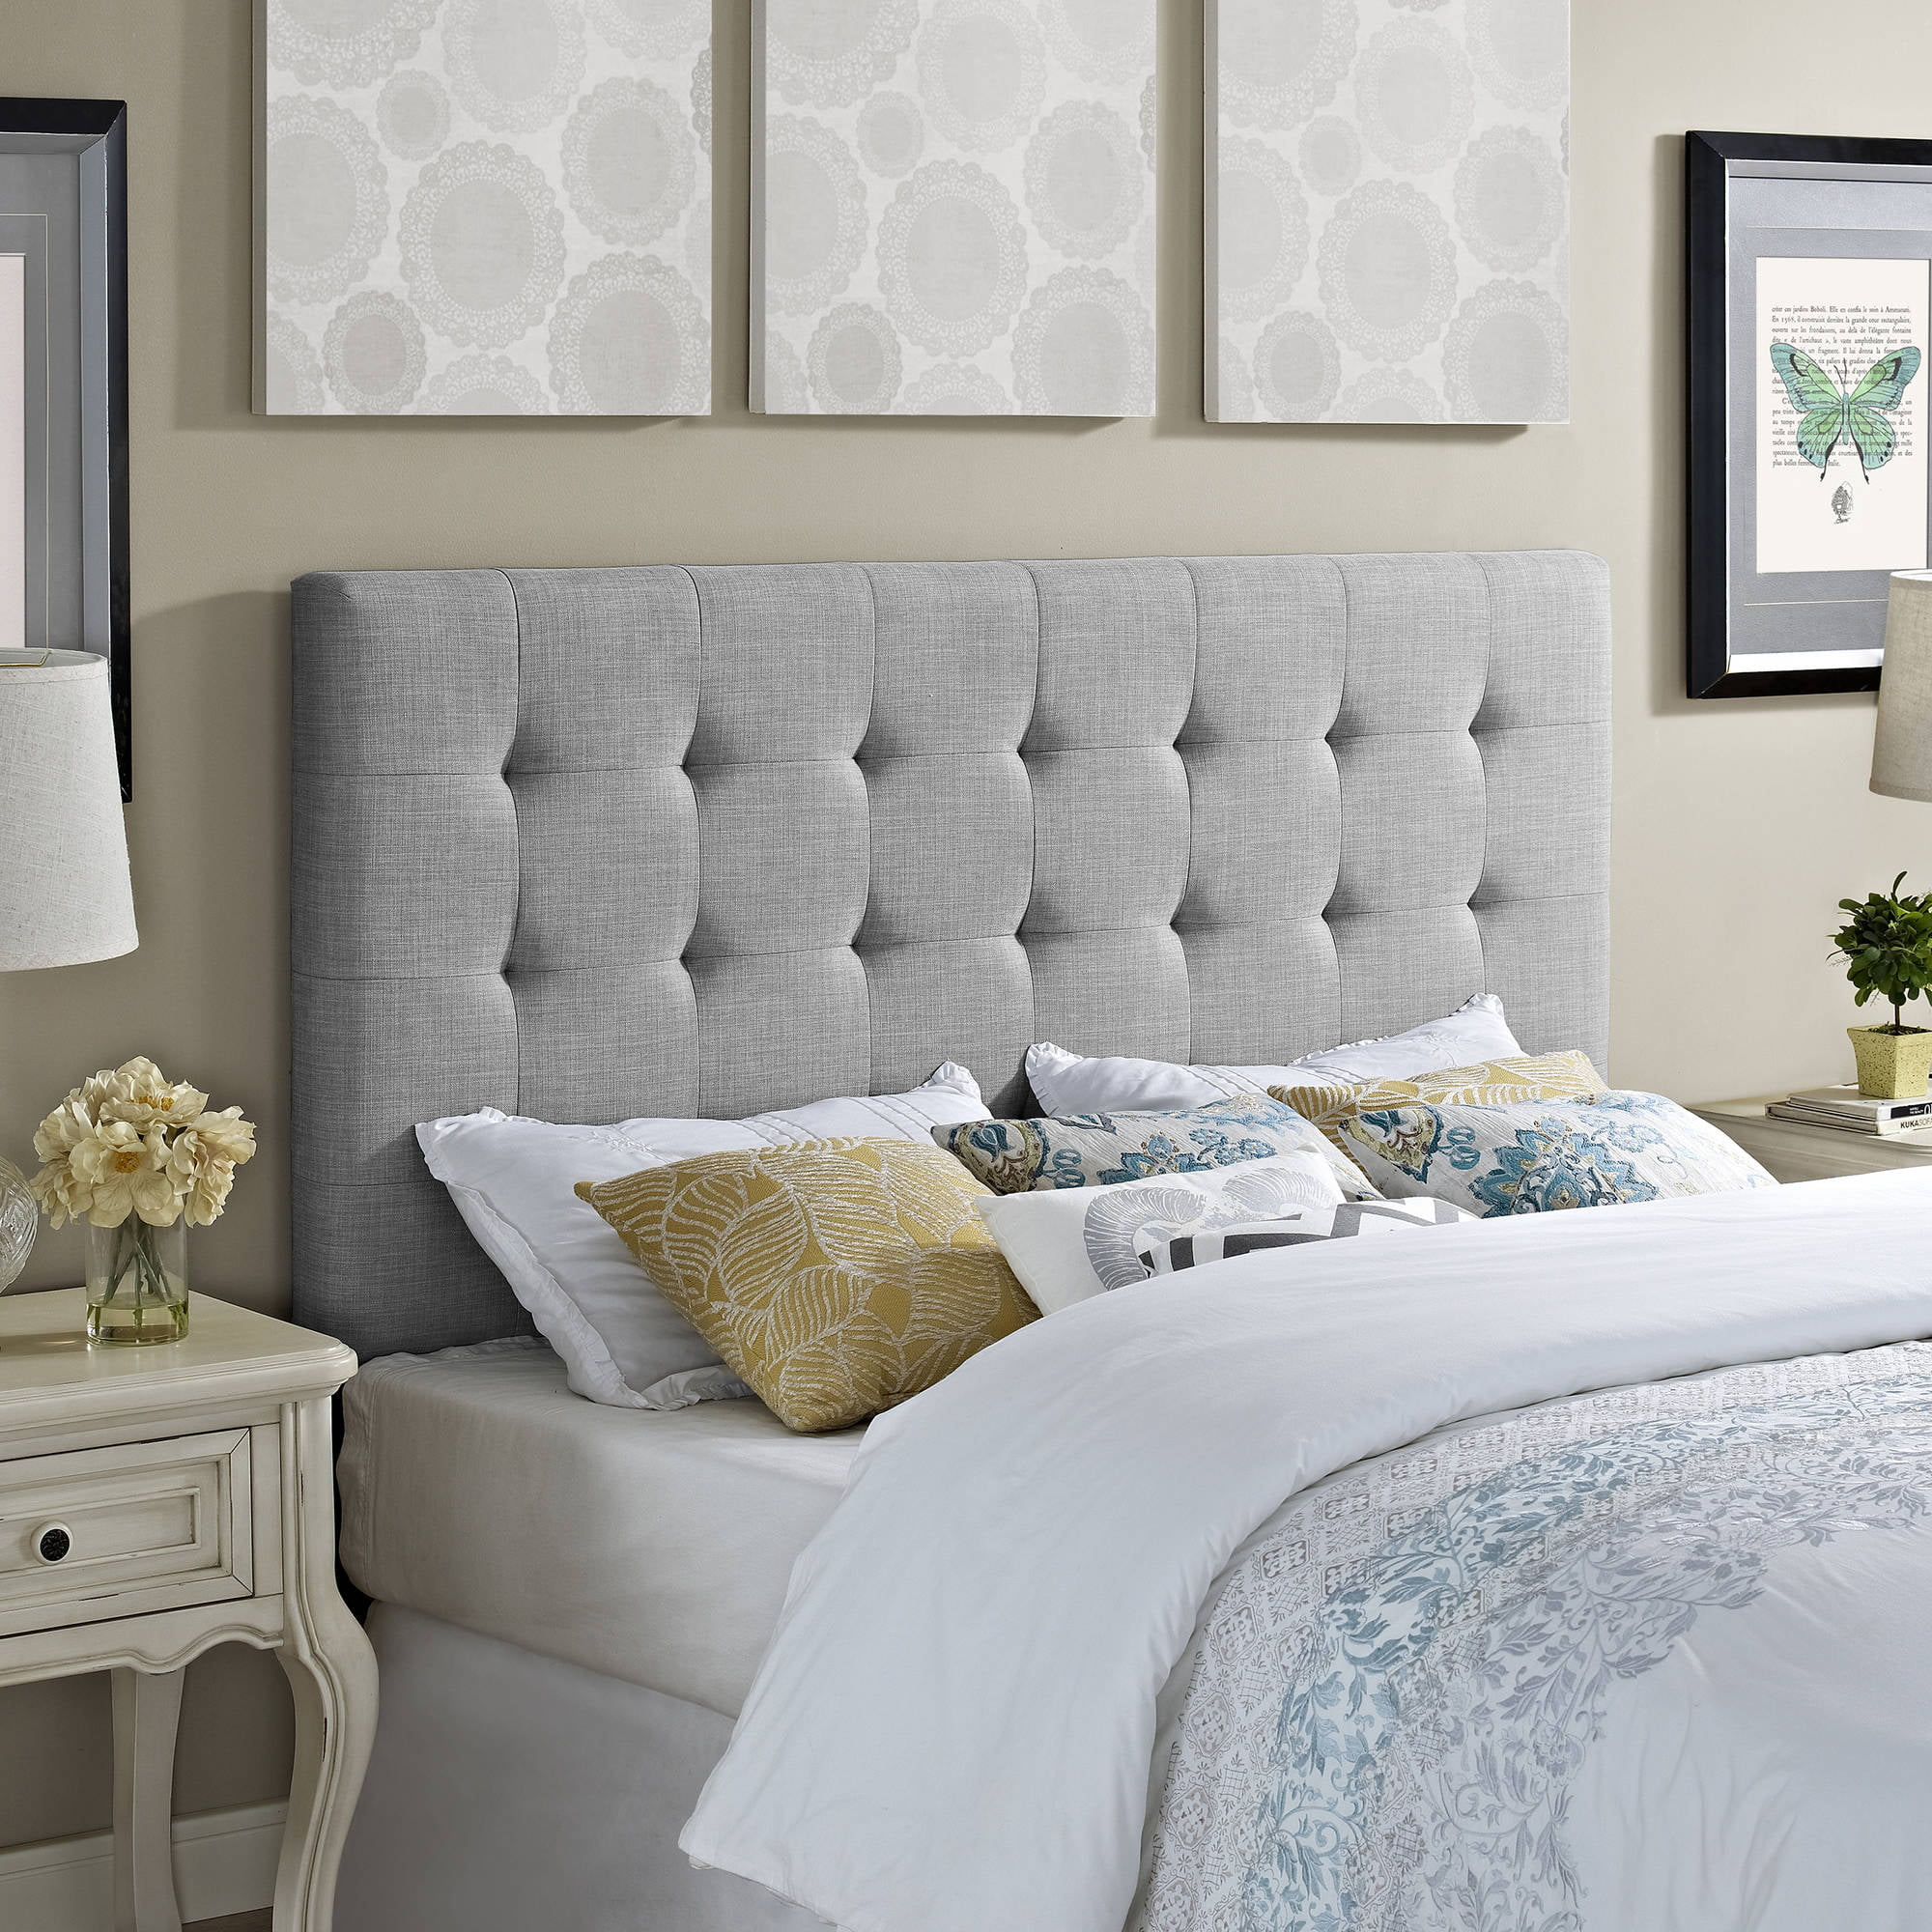 Captivating Headboards